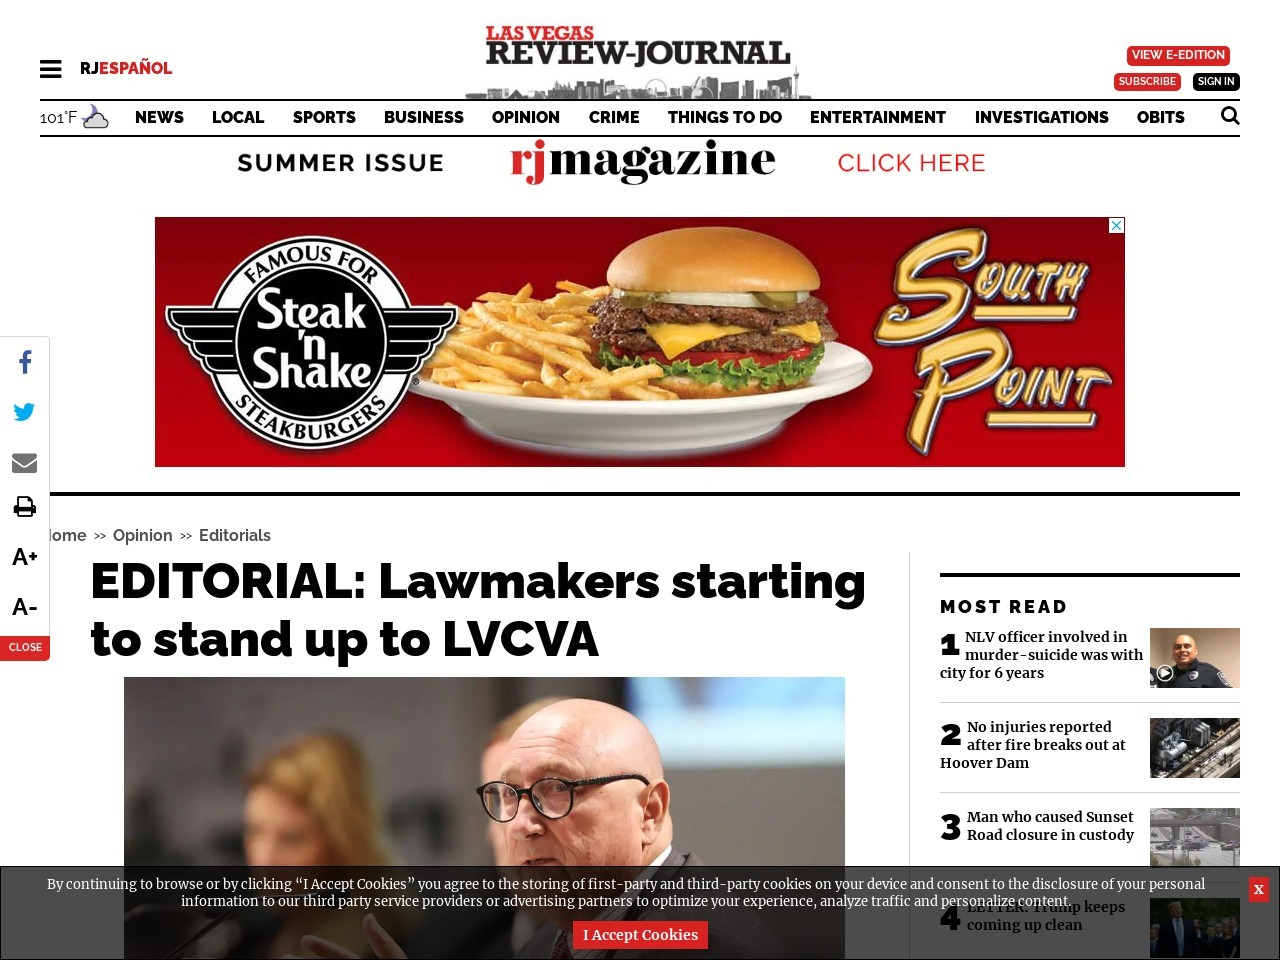 EDITORIAL: Lawmakers starting to stand up to LVCVA